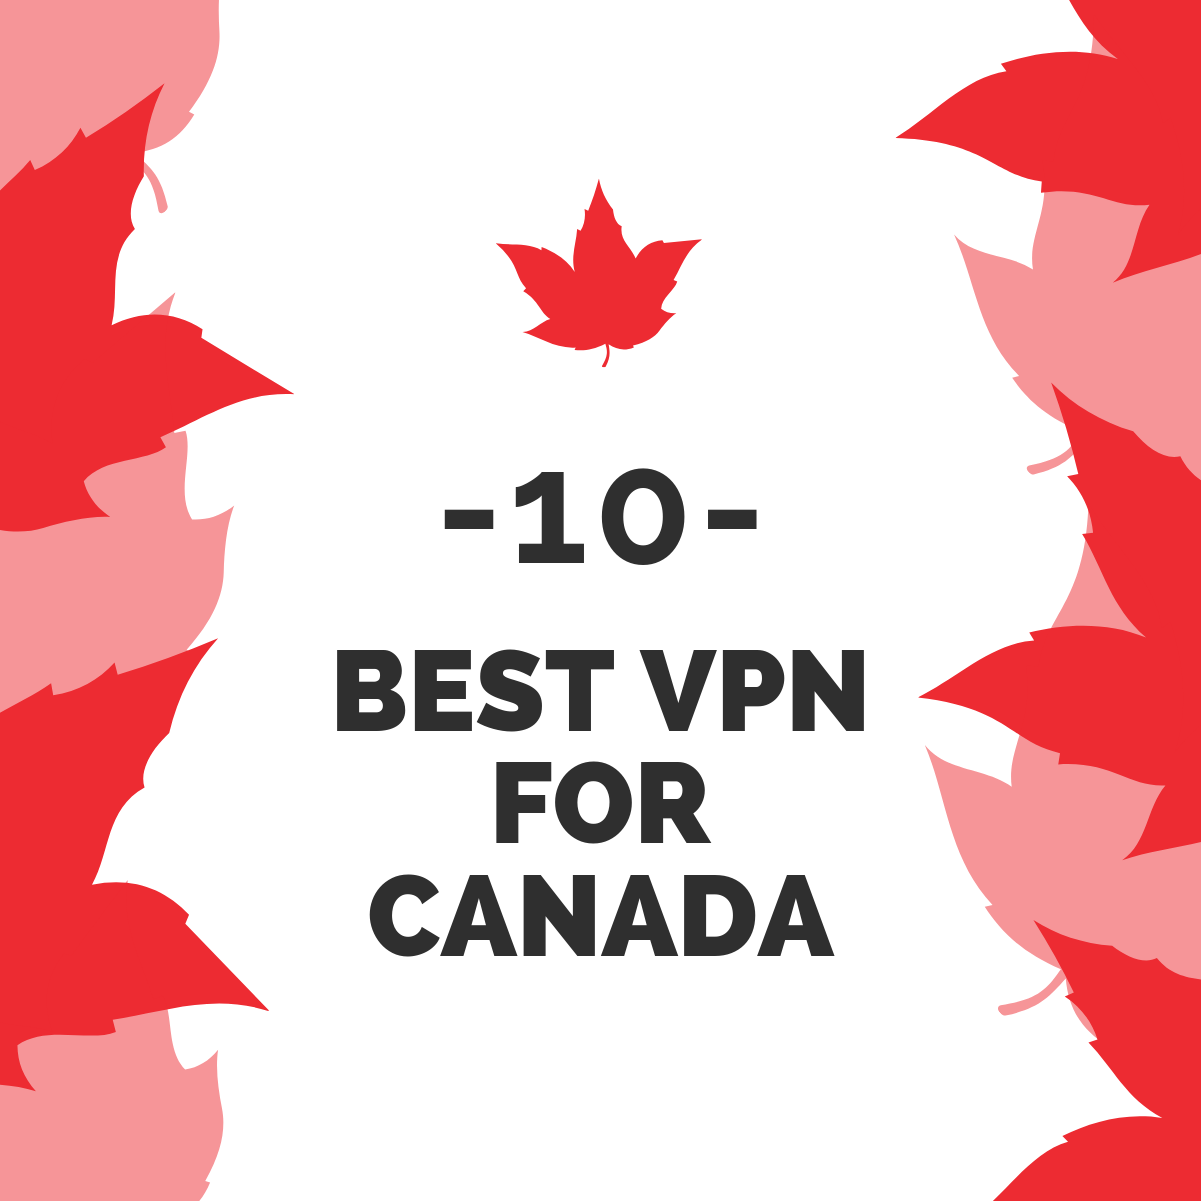 10 Canada VPNs to Help You Bypass Geo Blocks & Online